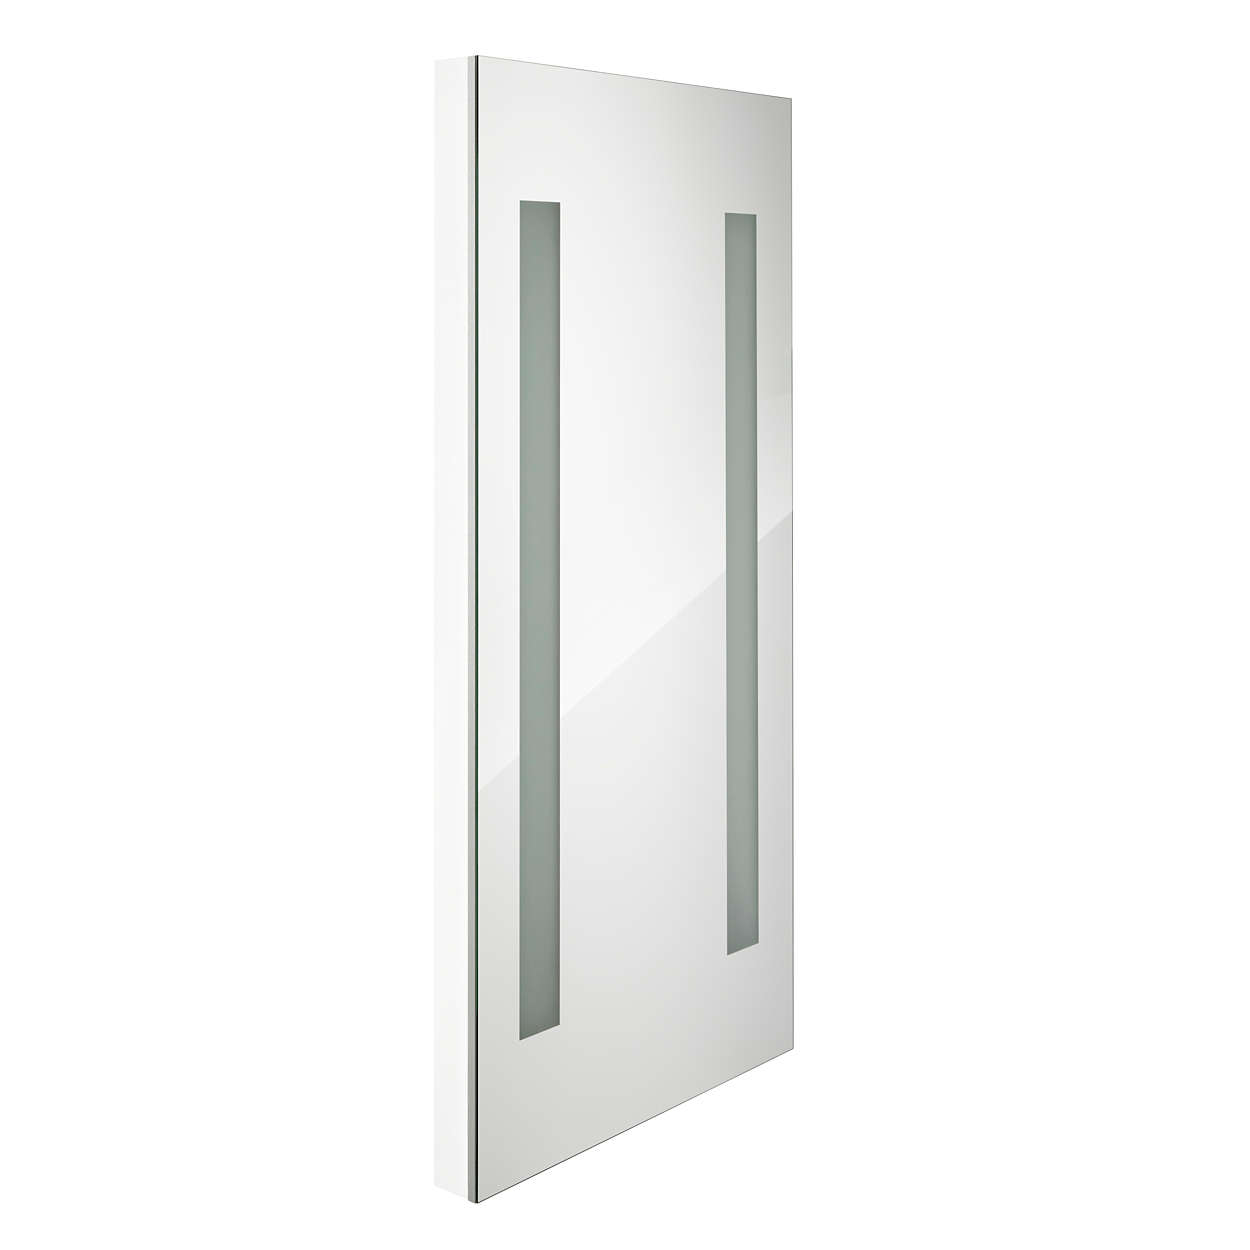 AmbiScene Fashion Mirror Occasions – fitting-room mirror with optimal lighting, which users can adapt to the occasion at hand